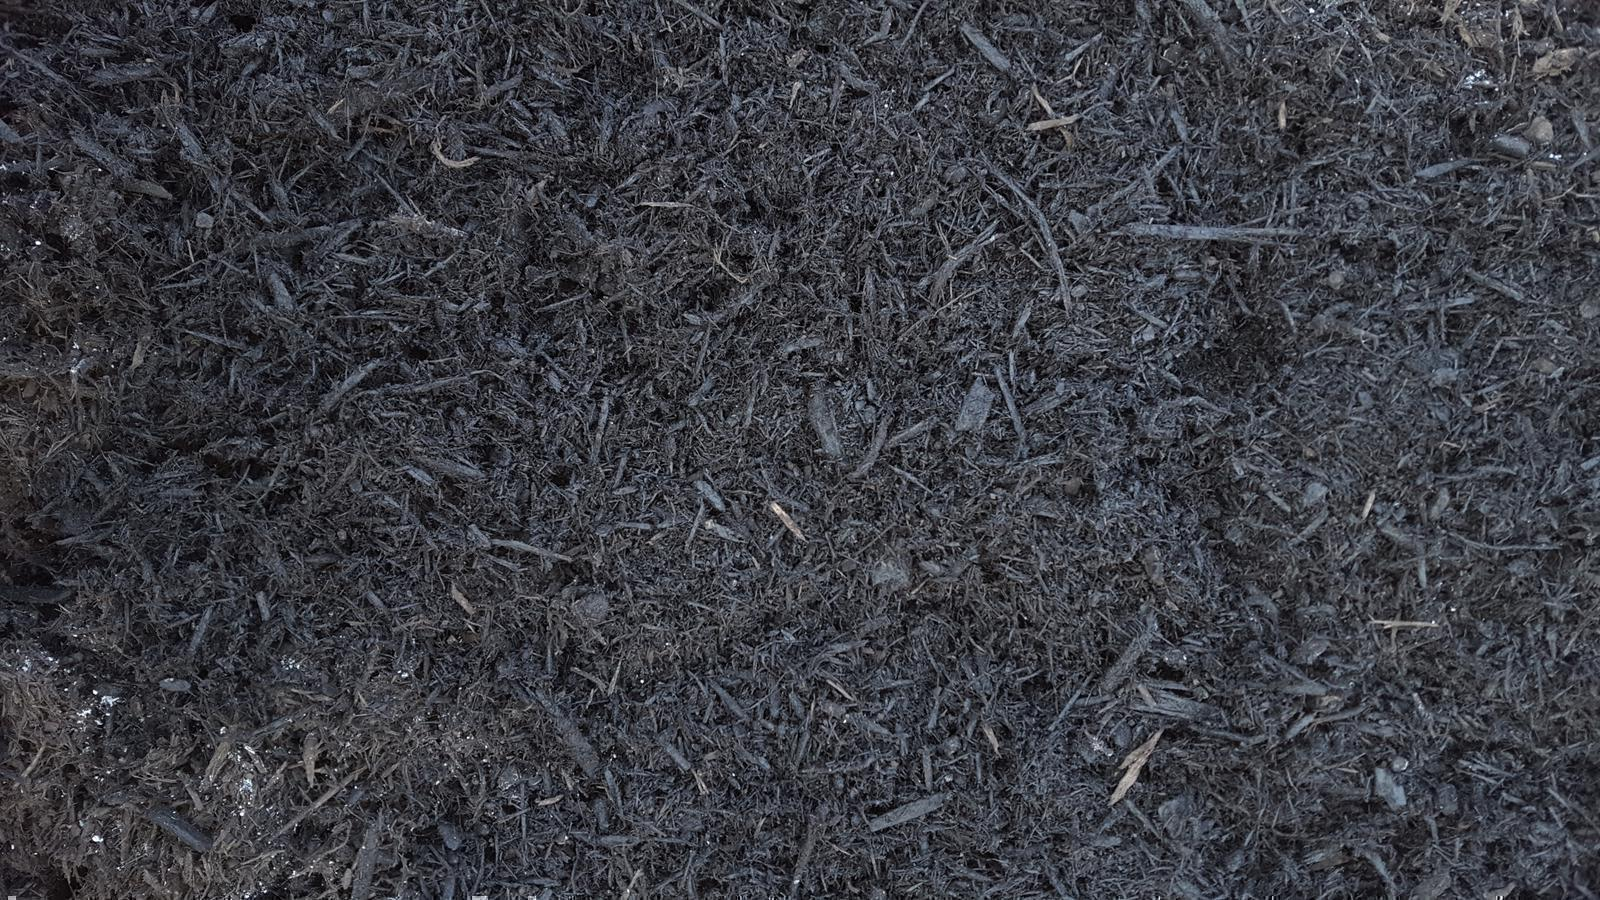 Black Bark Mulch Landscaping Material Dyed Black Bark Mulch